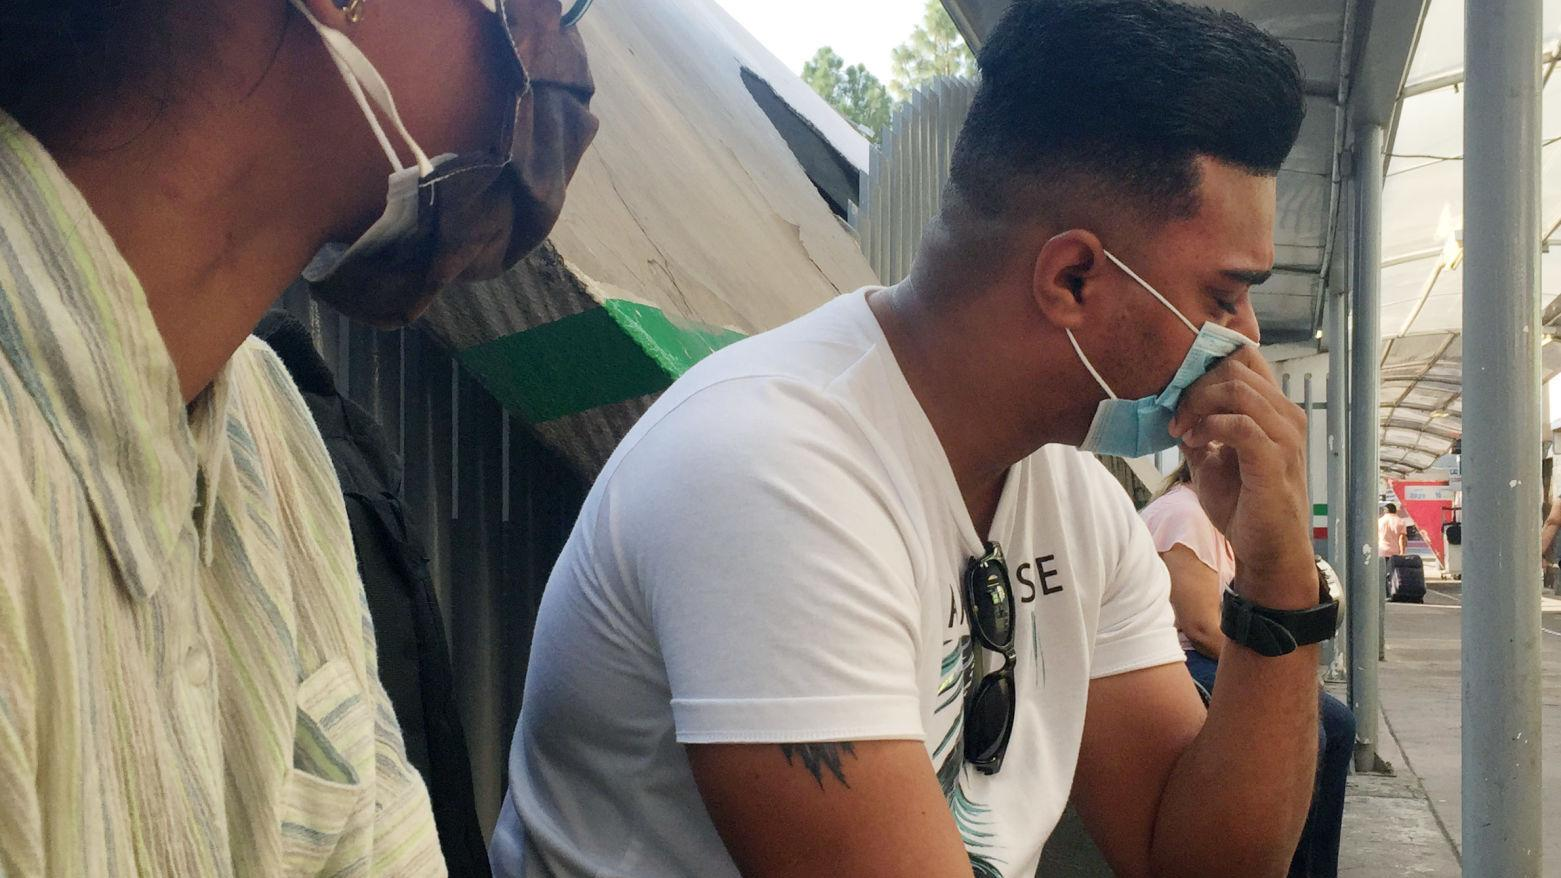 Cuban asylum seeker in Nogales 'can barely sleep' while separated from wife, son